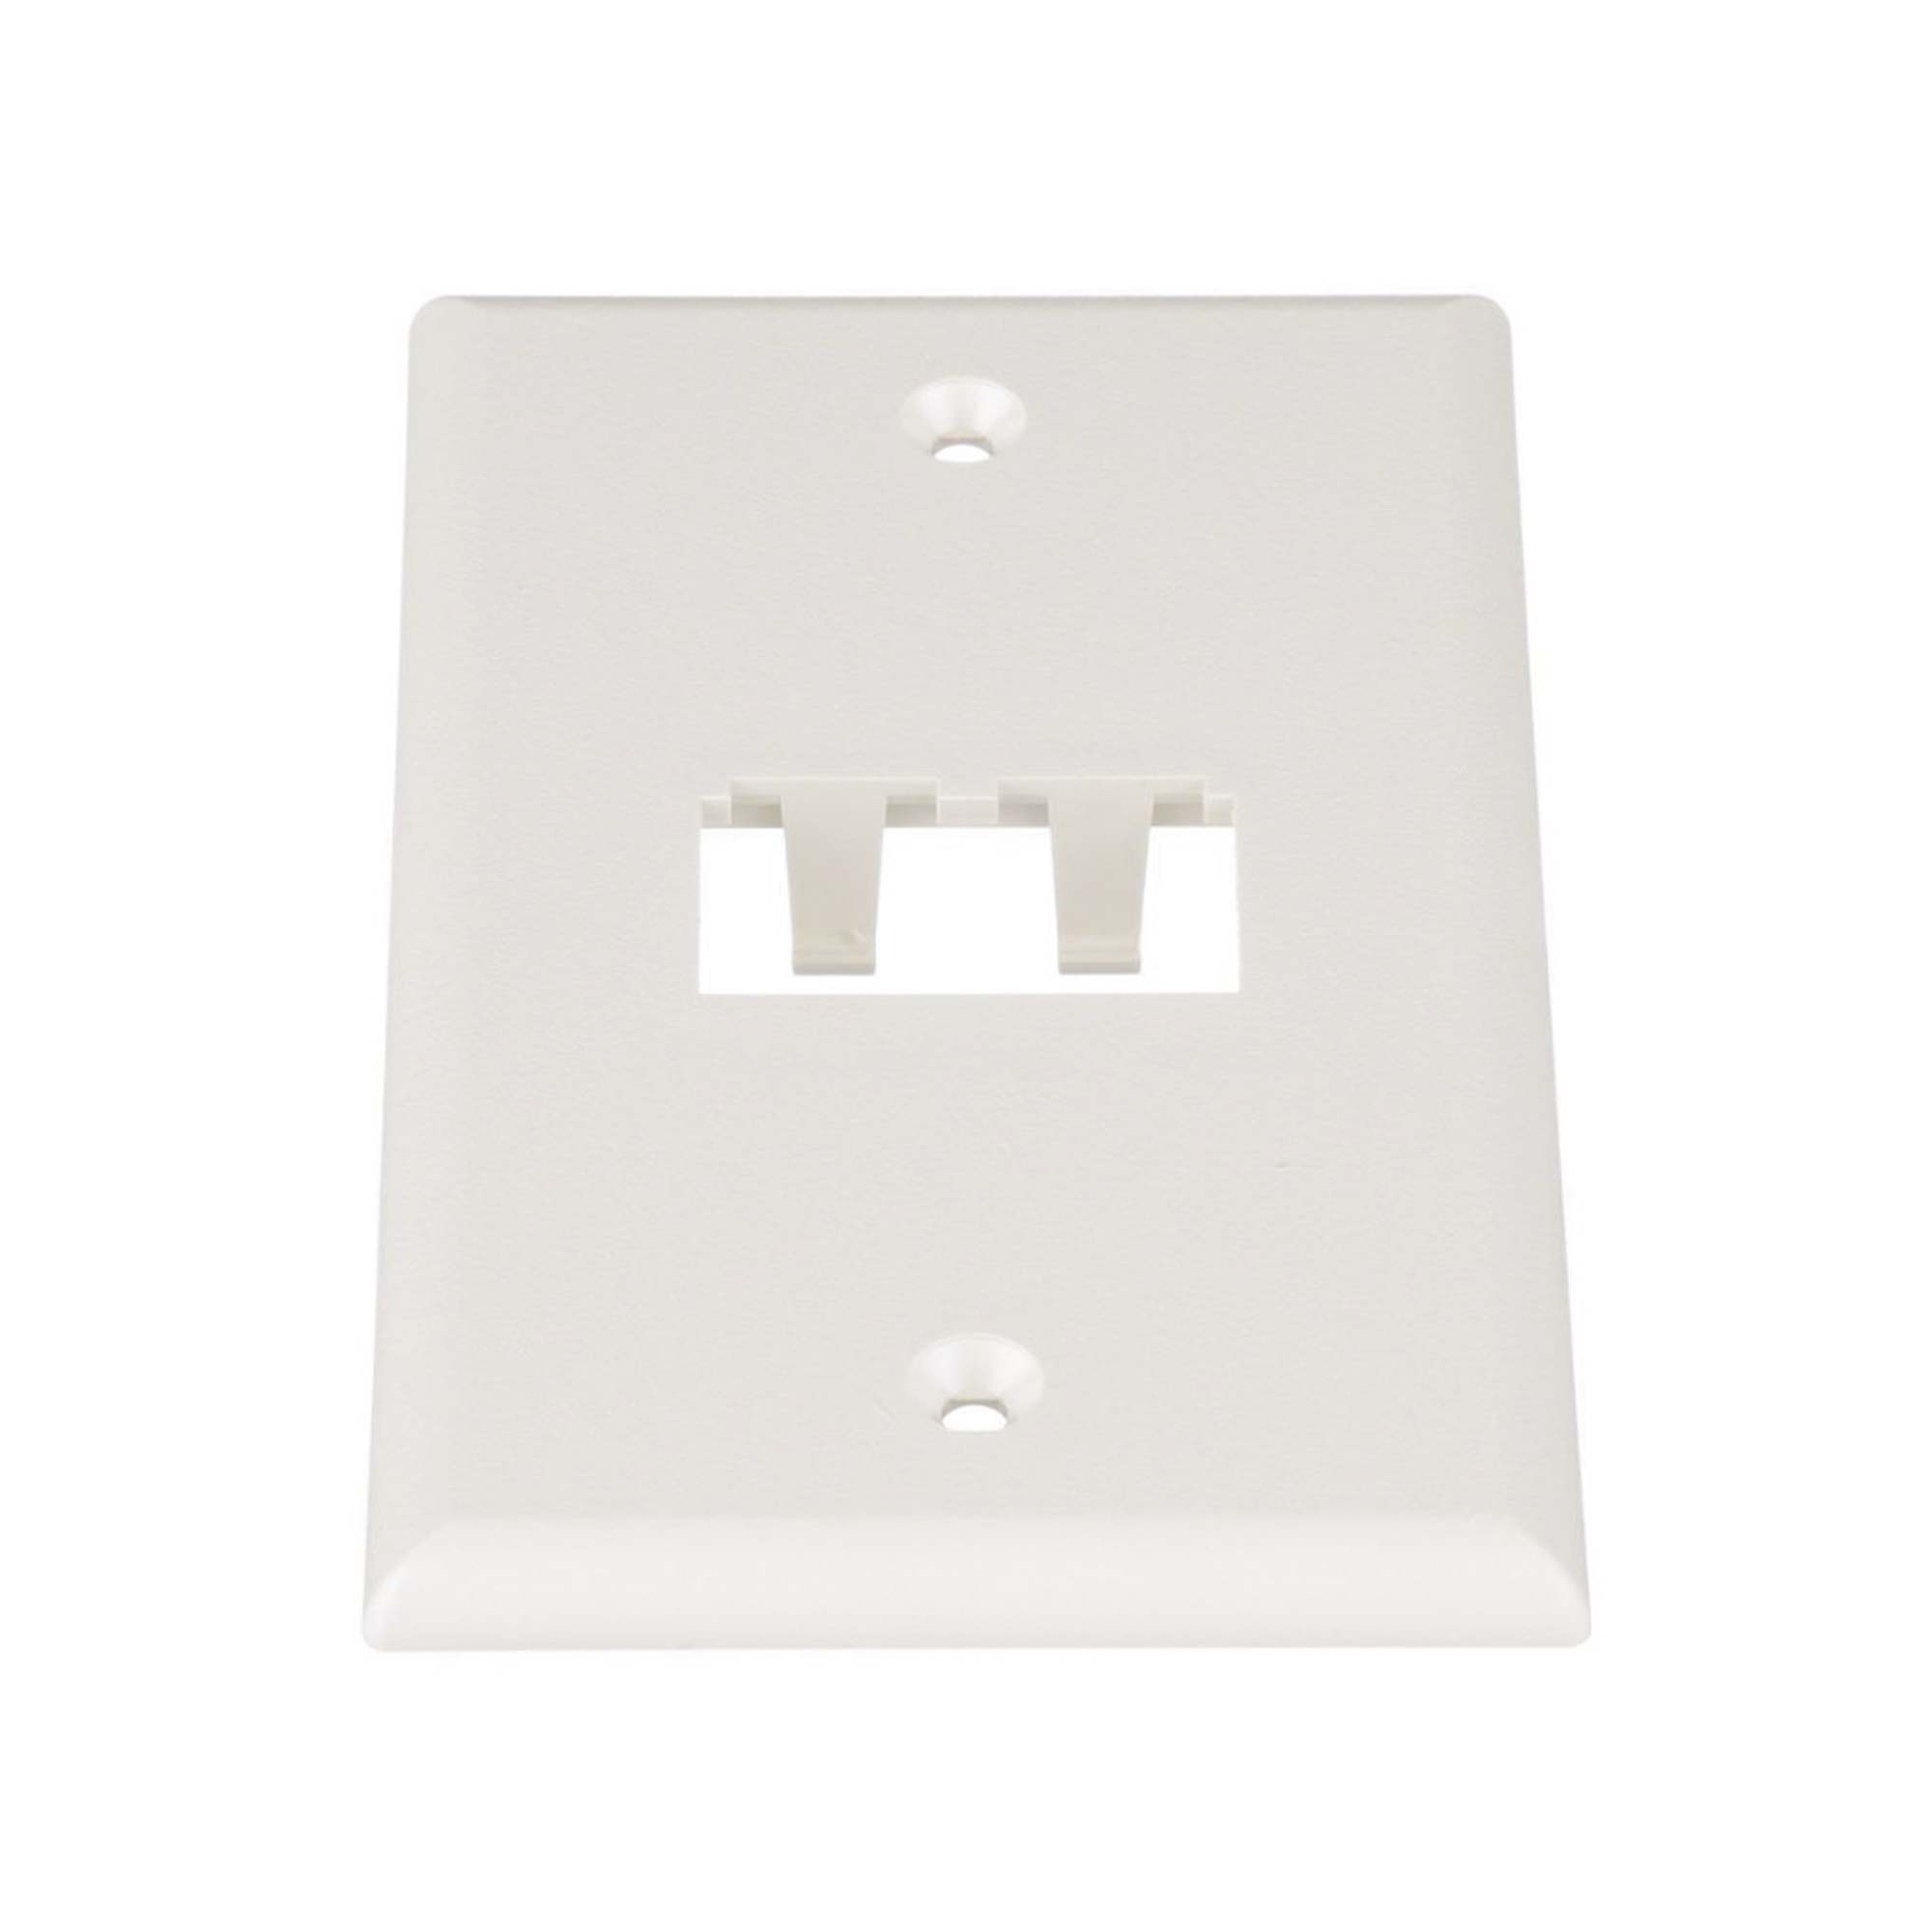 Placa de Pared Vertical Clásica, Salida Para 2 Puertos Mini-Com, Color Blanco Mate